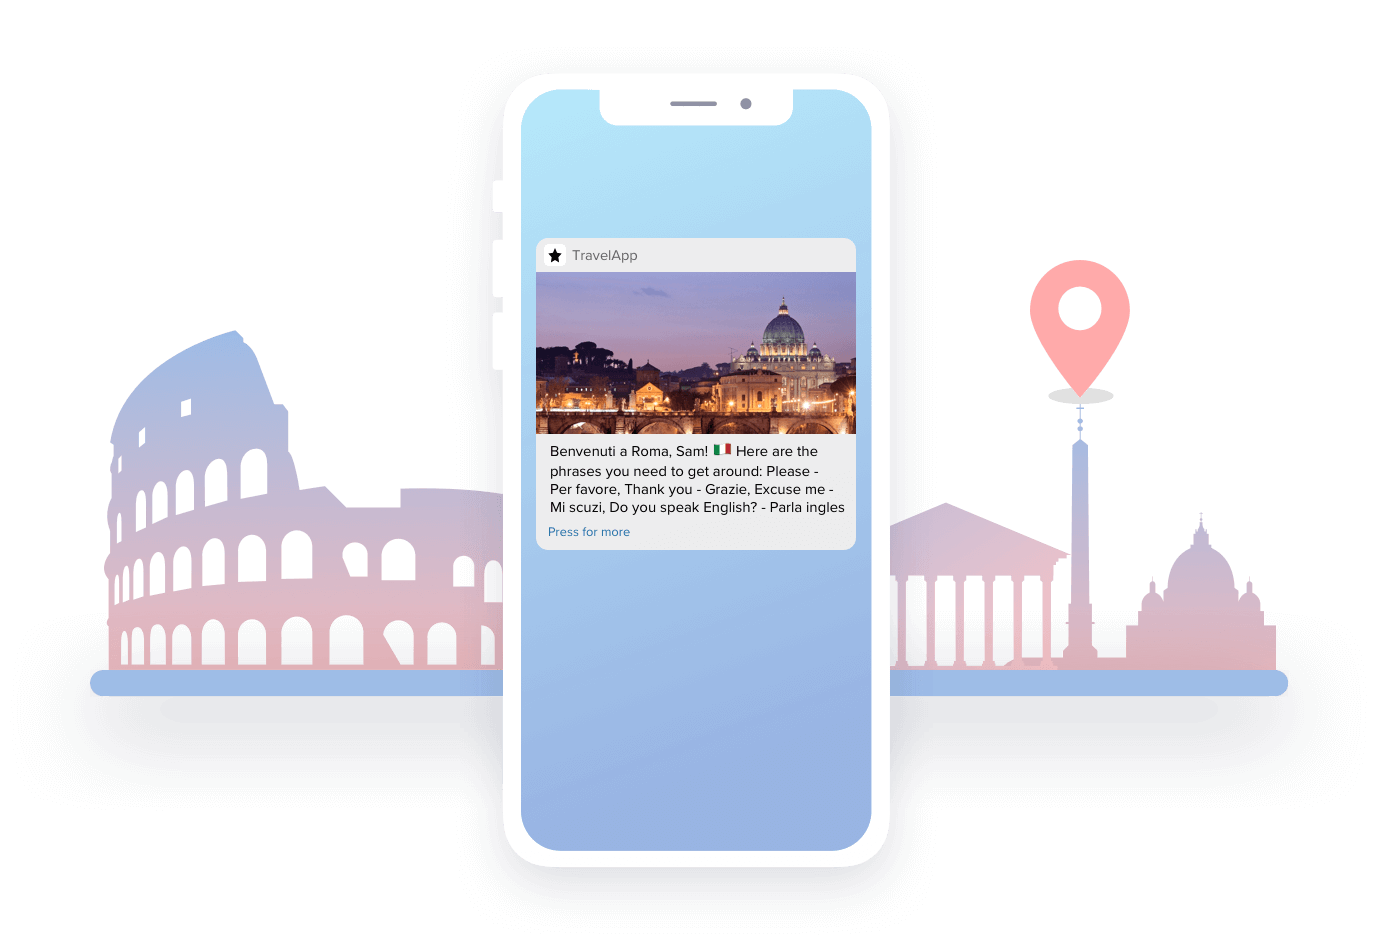 Trigger Real-Time Messages Based on Last-Known Location